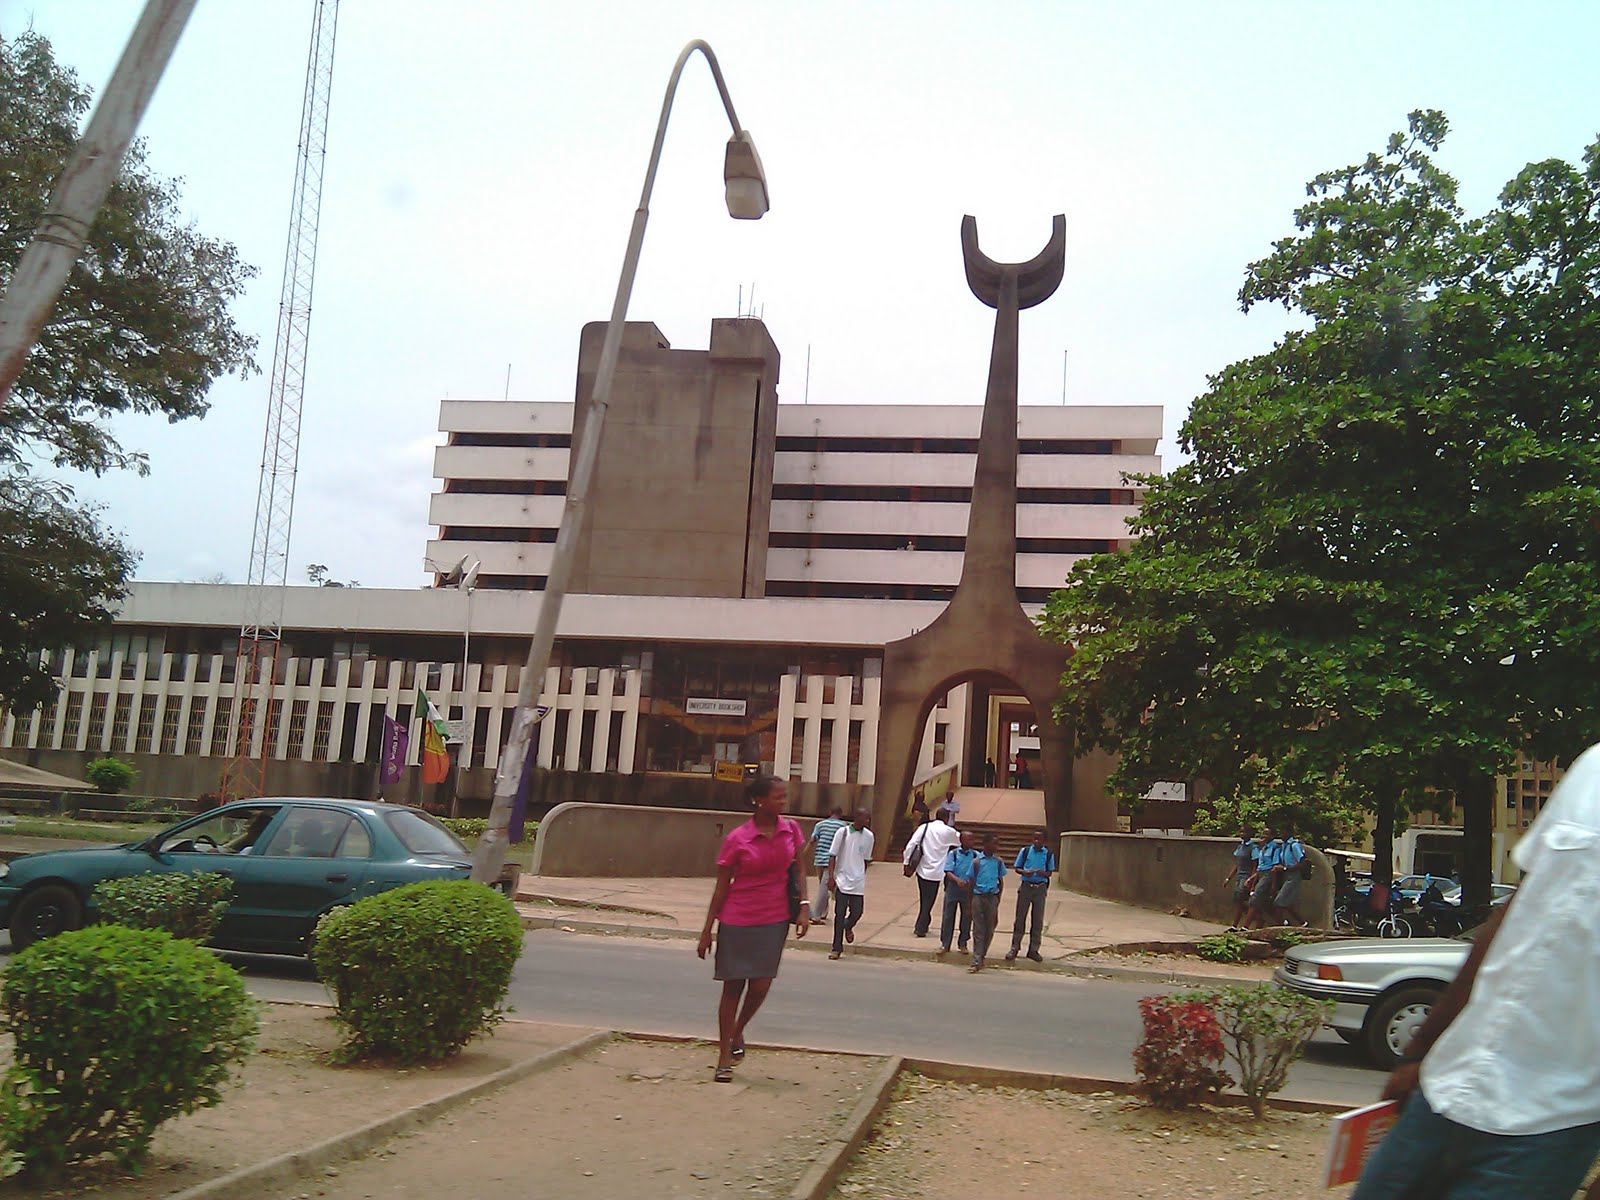 Sug President Of Oau Suspended For Seeking Funds From. Typical Resume. Application Support Analyst Sample Resume. What Is A Cover Letter Resume. Types Of Resume. Custodian Resume Template. Sample Resume Business Administration. Sample Resume For Teenagers First Job. Looking For Alaska Resume